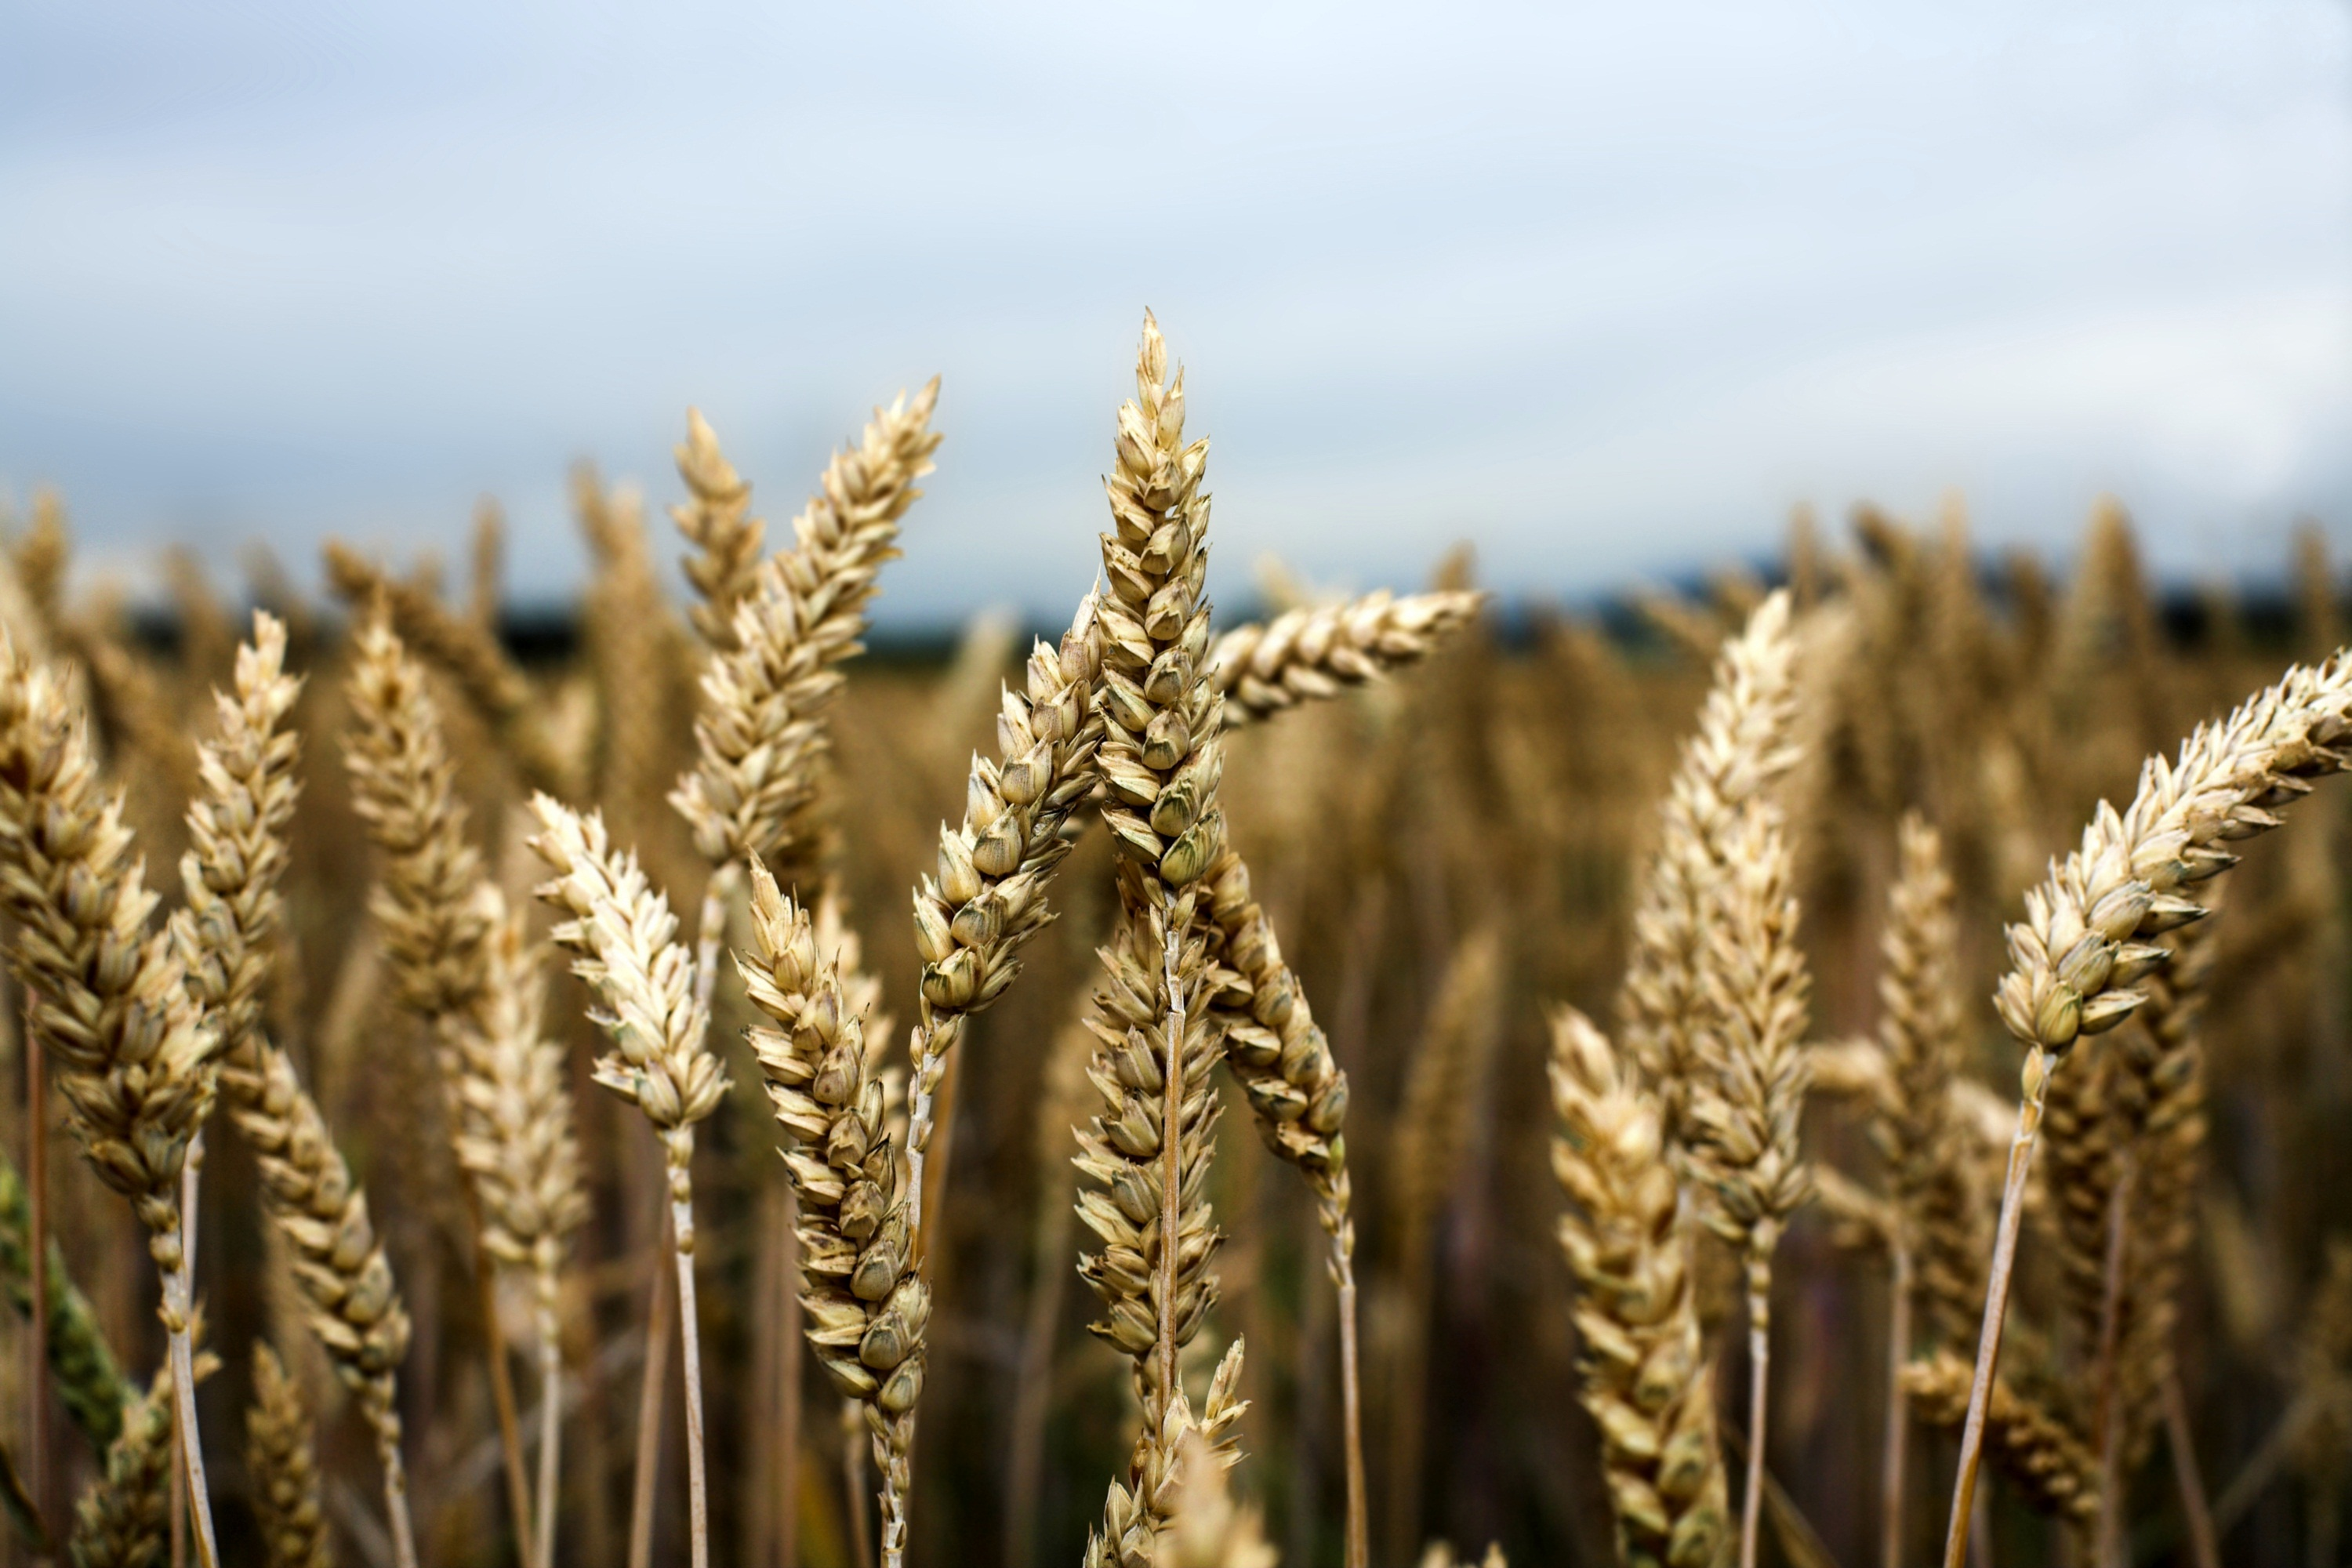 SynTech acquires Syngenta's residue study field and laboratory operations in Brazil